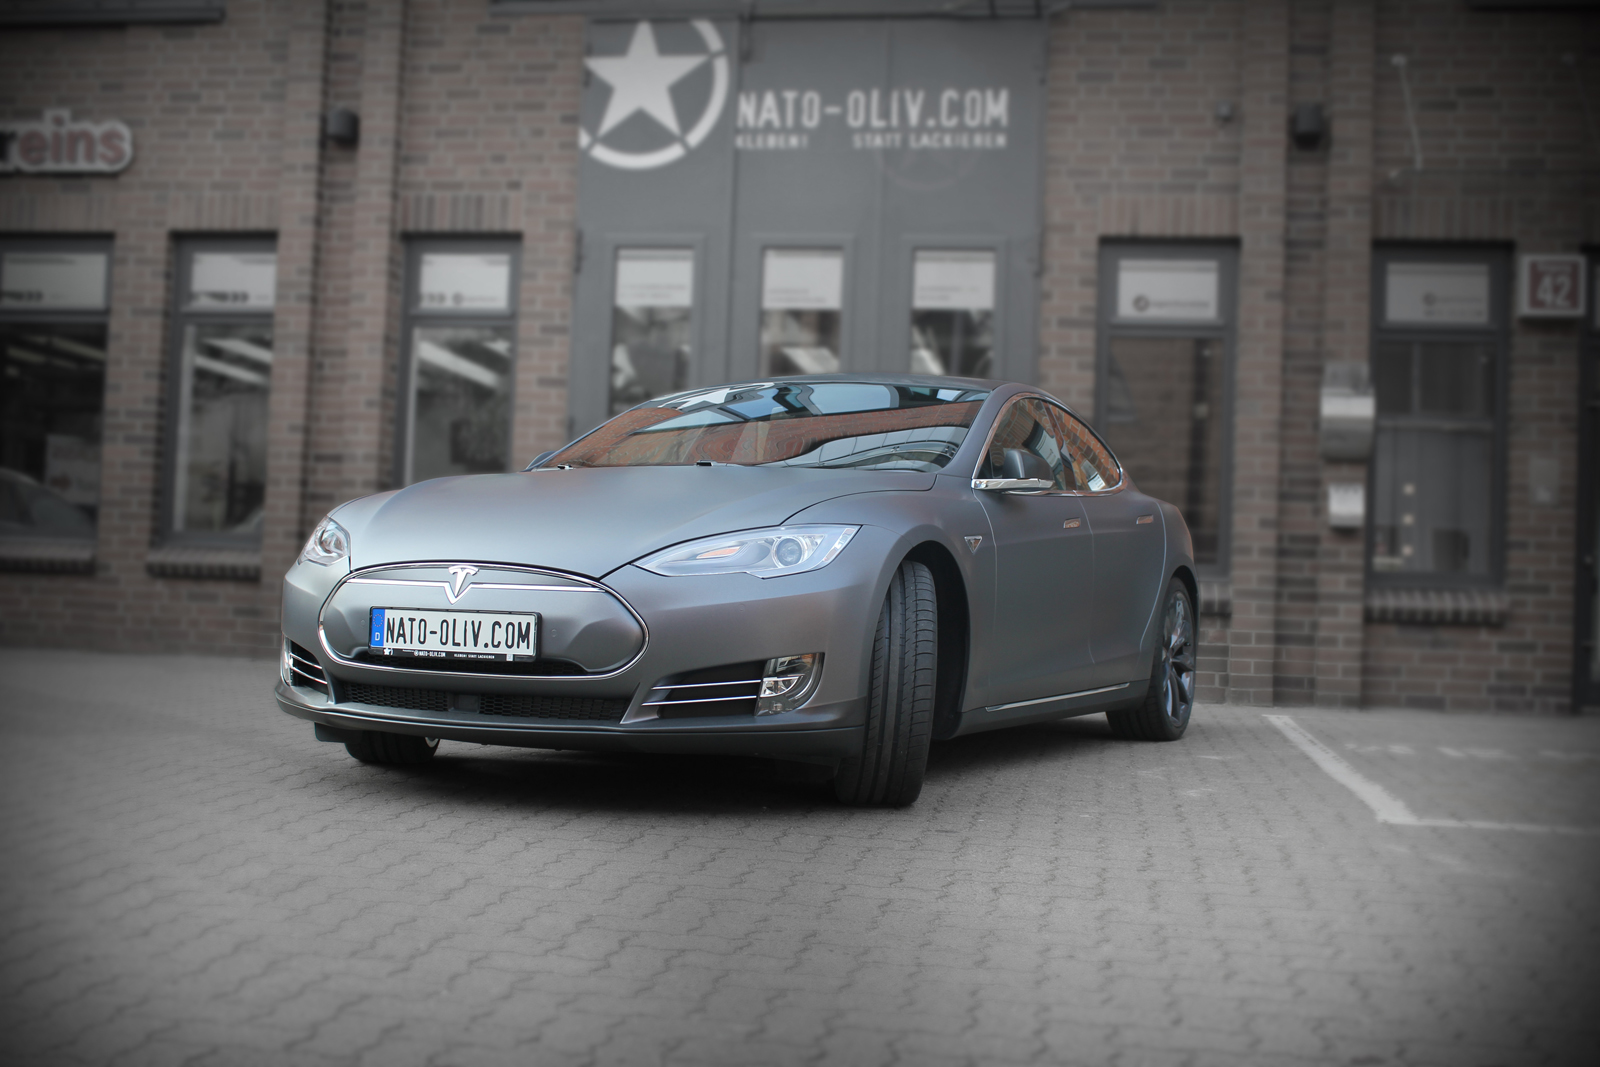 Car- Wrapping an einem Tesla Model S mit Folie in dark grey matt metallic